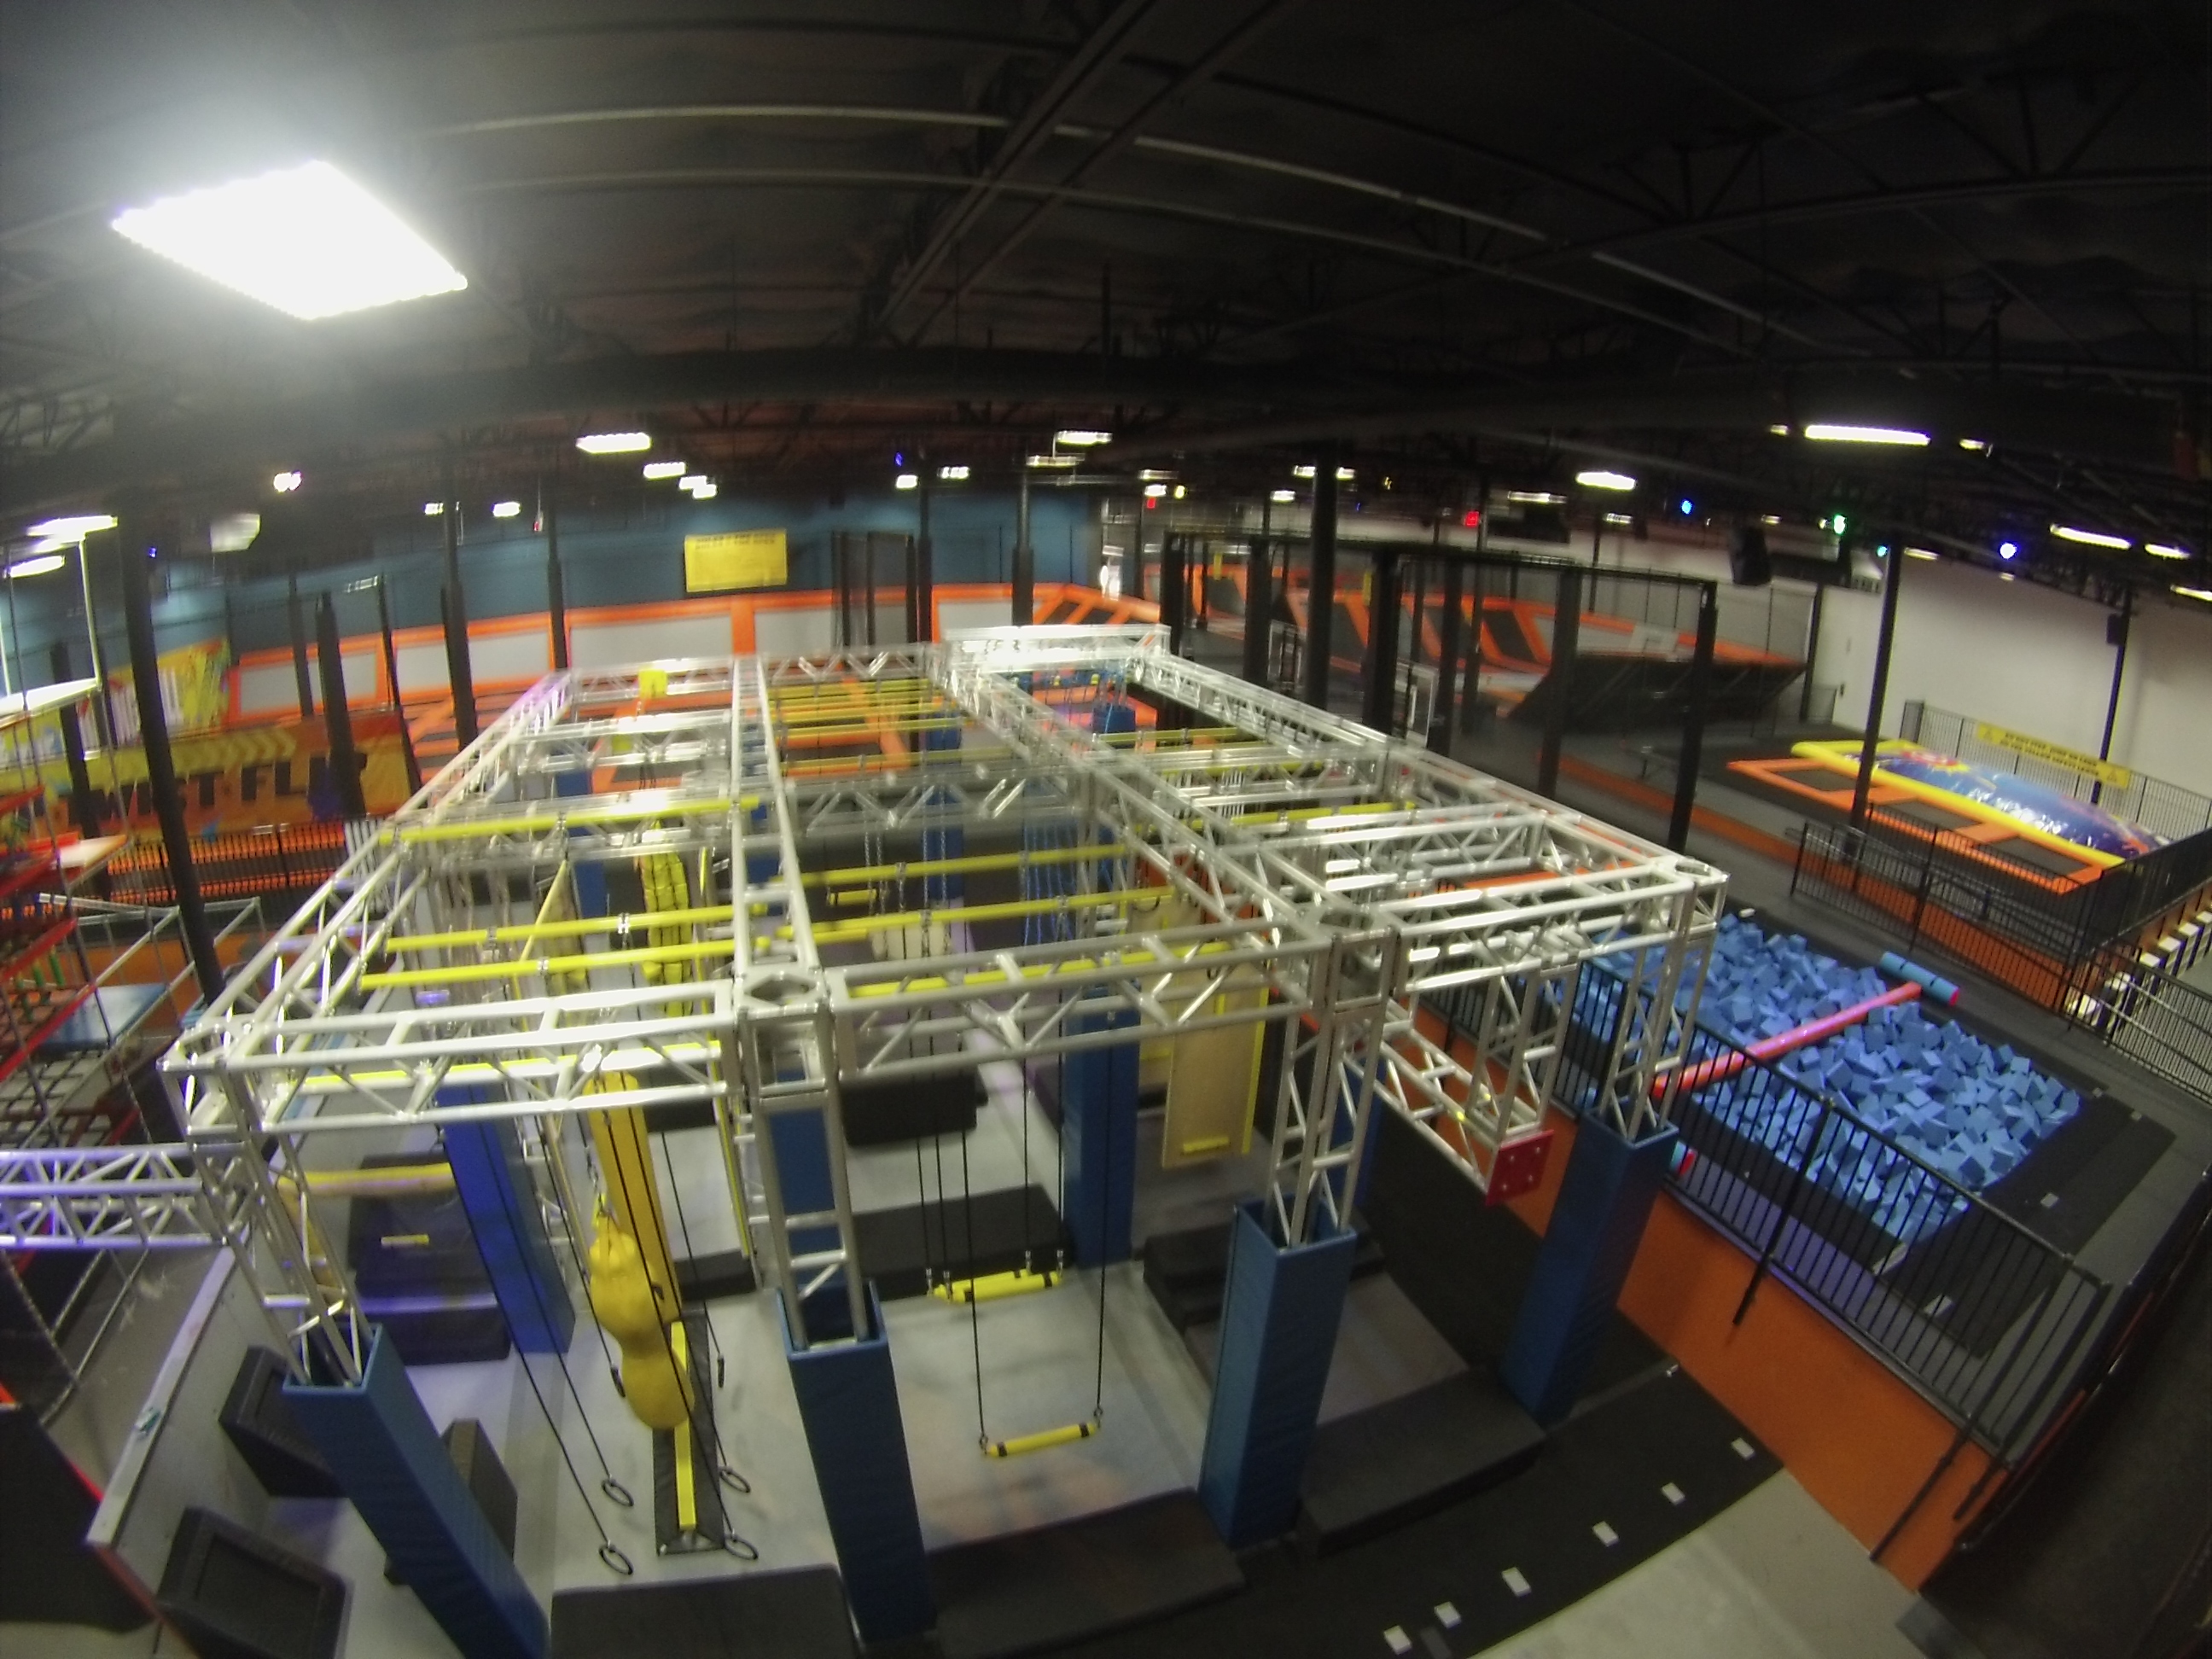 40 000 Square Foot Trampoline Amp Adventure Park Opening In